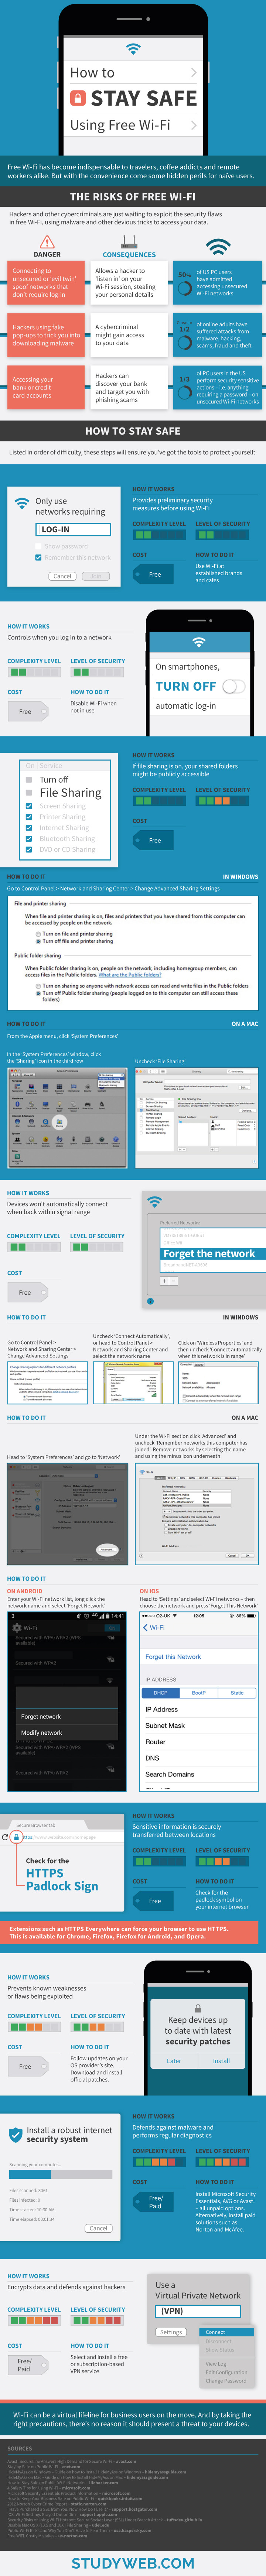 how-to-stay-safe-using-free-wifi.jpg